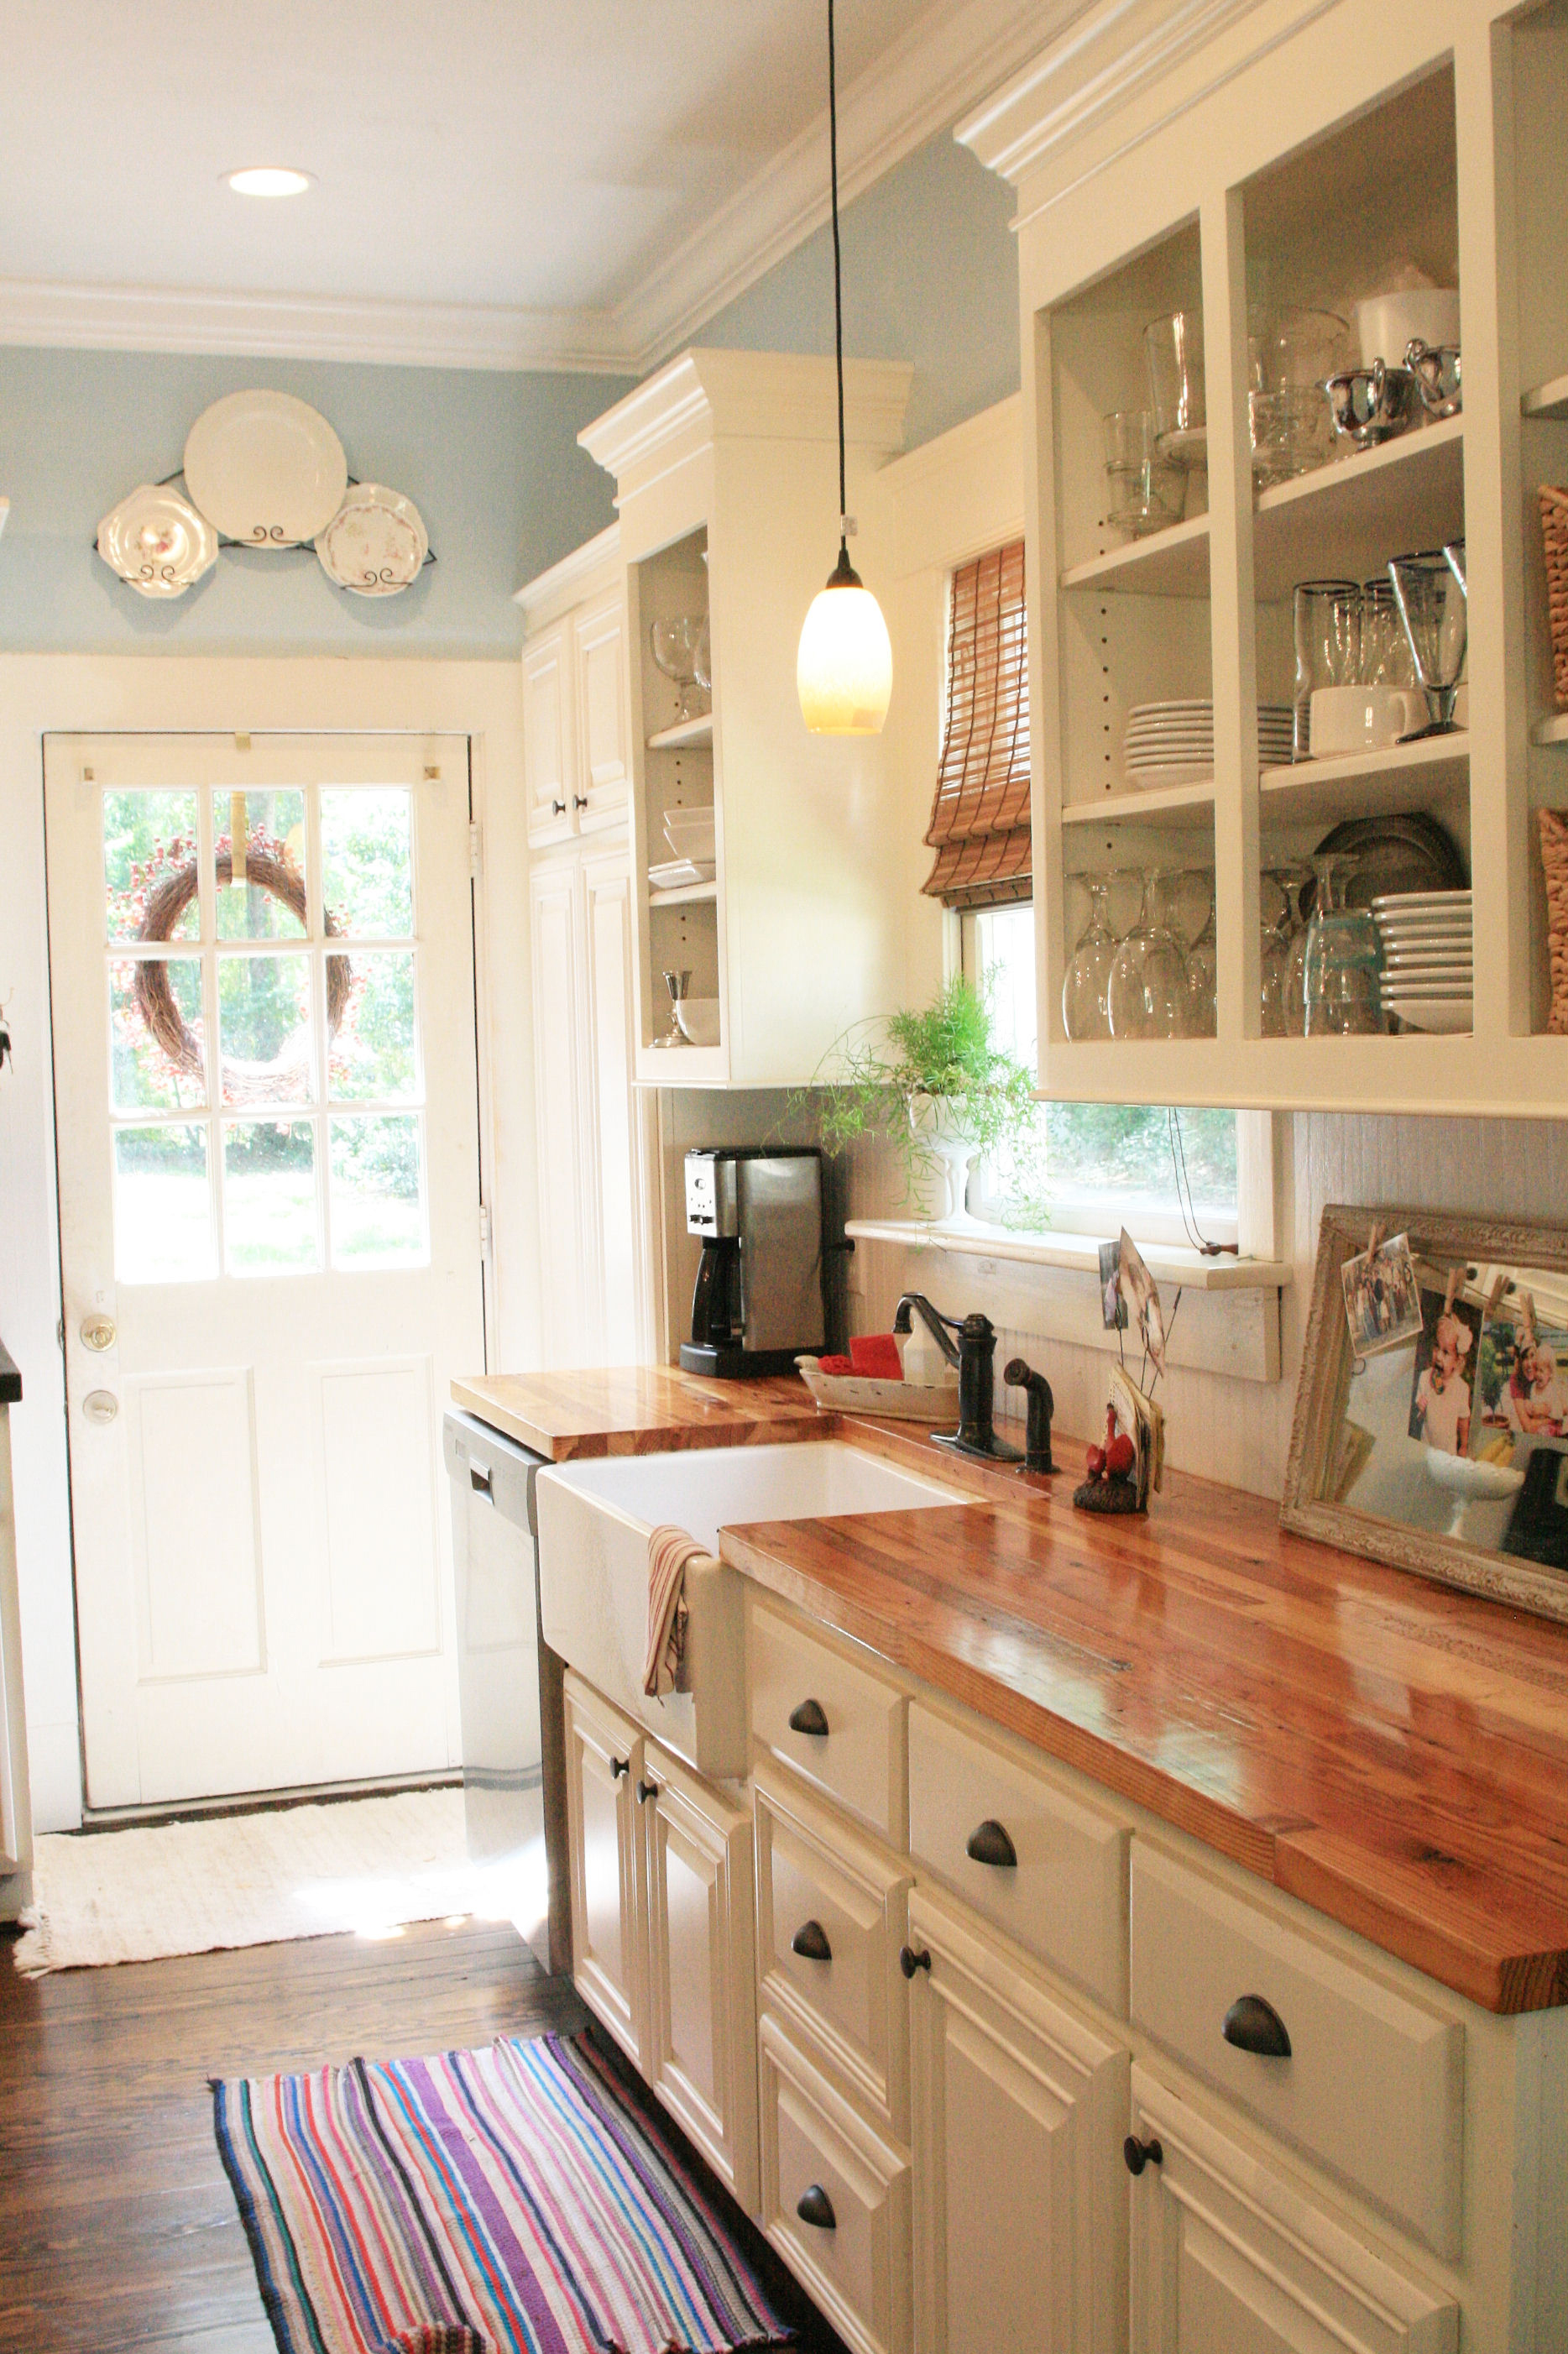 best rustic country kitchen design ideas country kitchen ideas Wood Counters Add Warmth to a Clean White Kitchen